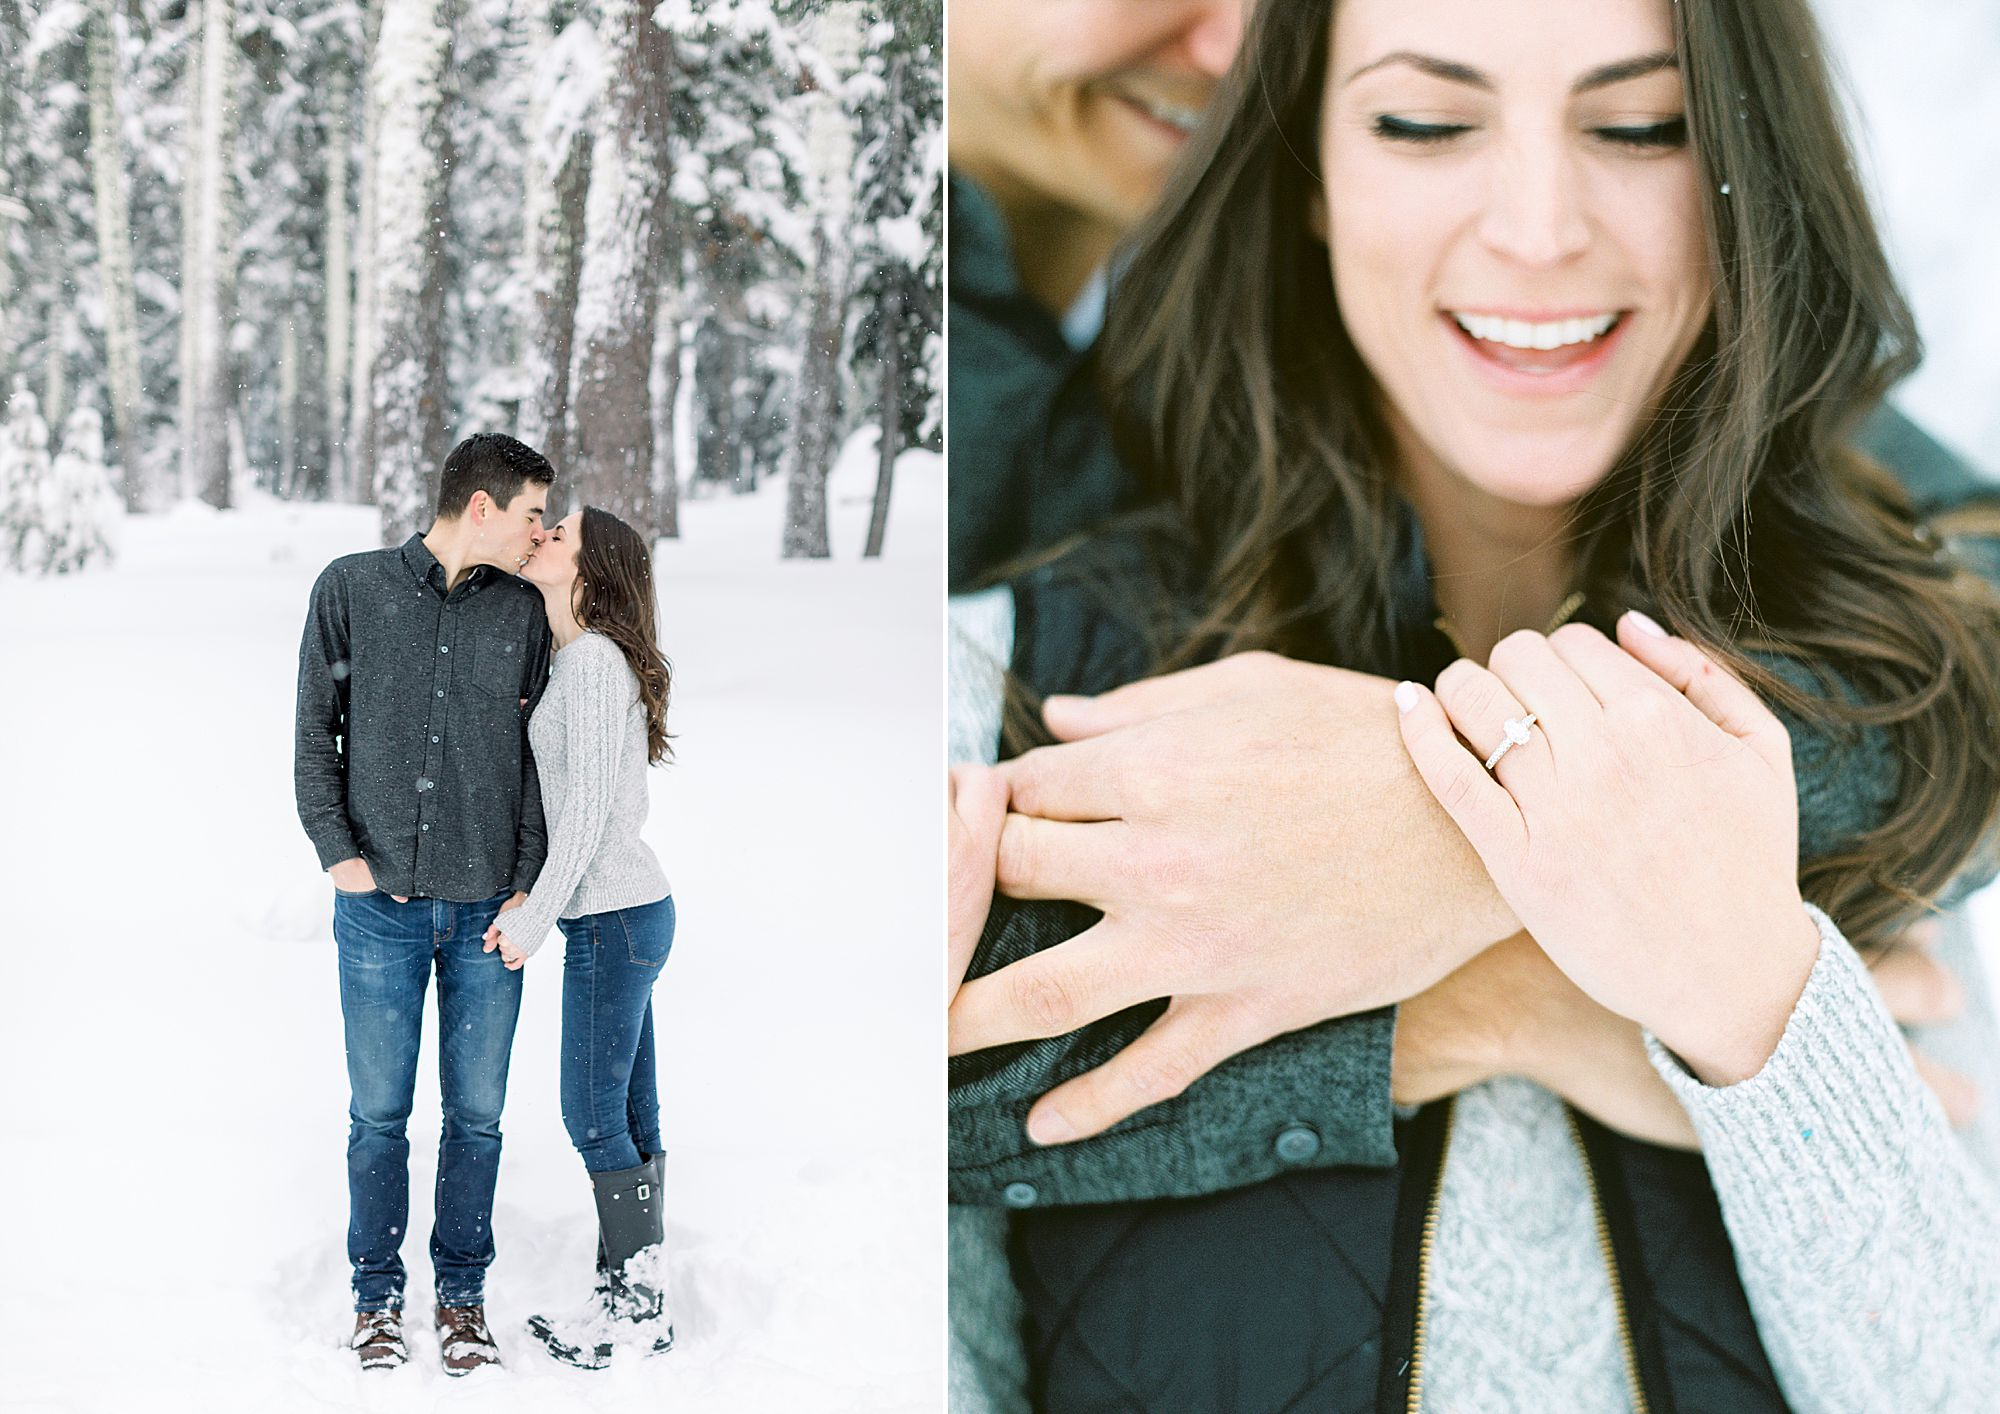 Snowy Tahoe Engagement Session - Alex and Kevin - Ashley Baumgartner - Tahoe Engagement Session - Tahoe Wedding Photographer - Tahoe Engagement Photos - Snow Engagement Photos_0011.jpg